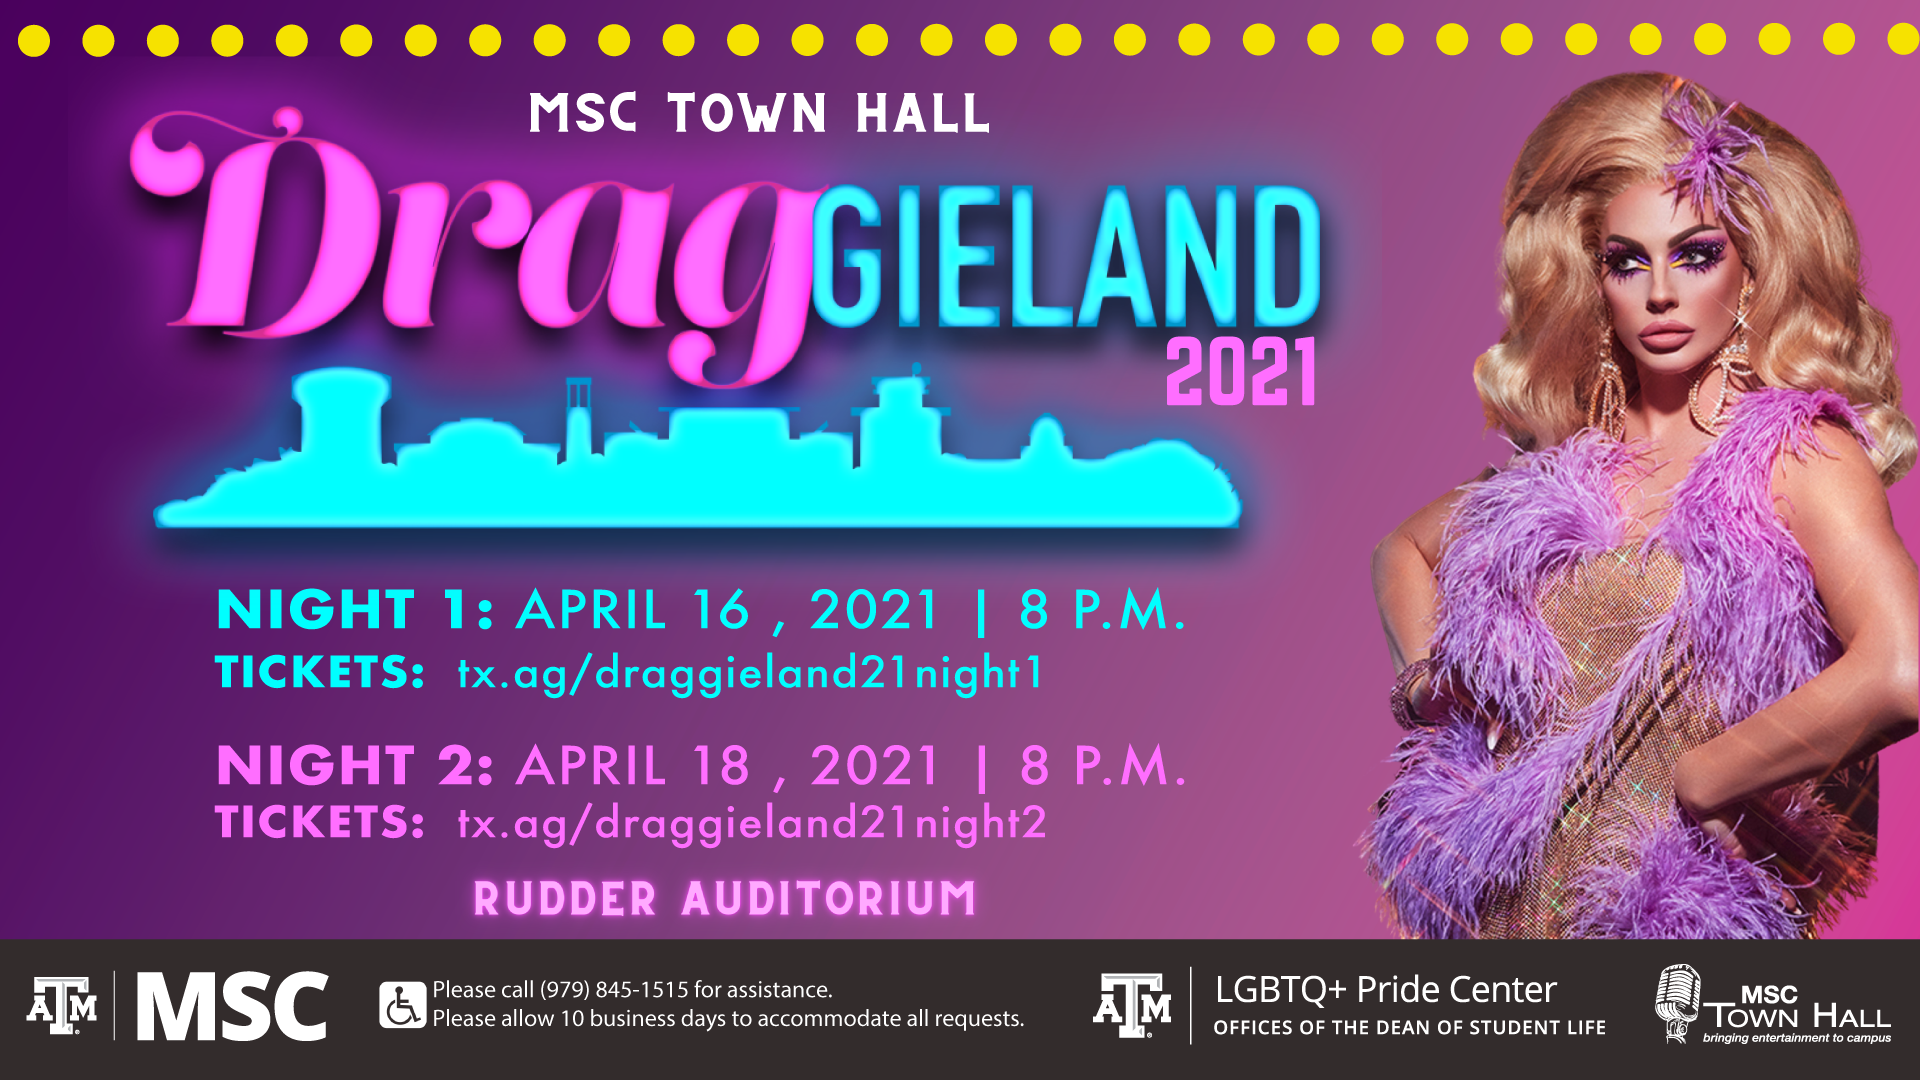 MSC Town Hall Presents Draggieland 2021, Night 1: April 16, 2021 at 8 p.m., Tickets at tx.ag/draggieland21night1, Night 2: April 18, 2021 at 8 p.m., Tickets at tx.ag/draggieland21night2, Event at the Rudder Auditorium, Please call 979.845.1515 for assistance. Please allow 10 business days to accommodate all requests.